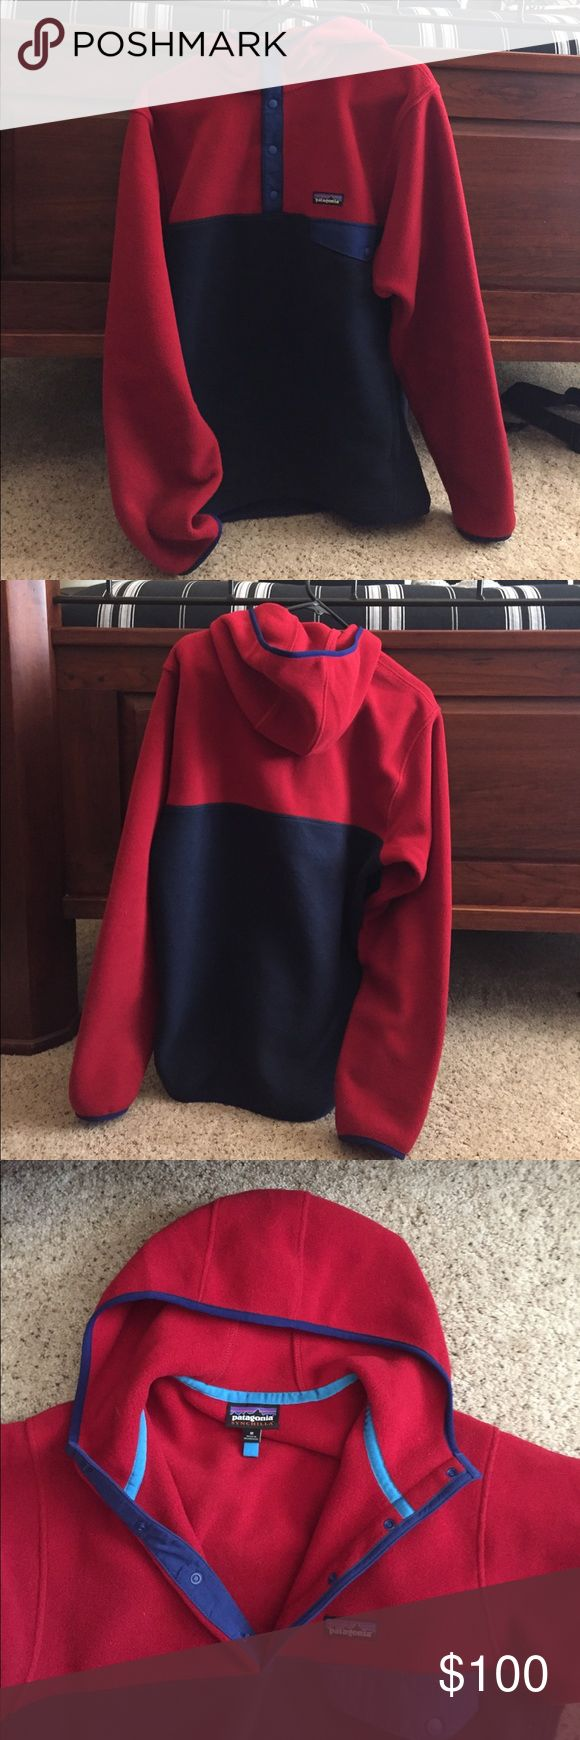 PATAGONIA SYNCHILLA SNAP-T PULLOVER with HOOD Exclusive Patagonia synchilla pullover rarely worn and in excellent condition. HAS POCKETS Patagonia Jackets & Coats